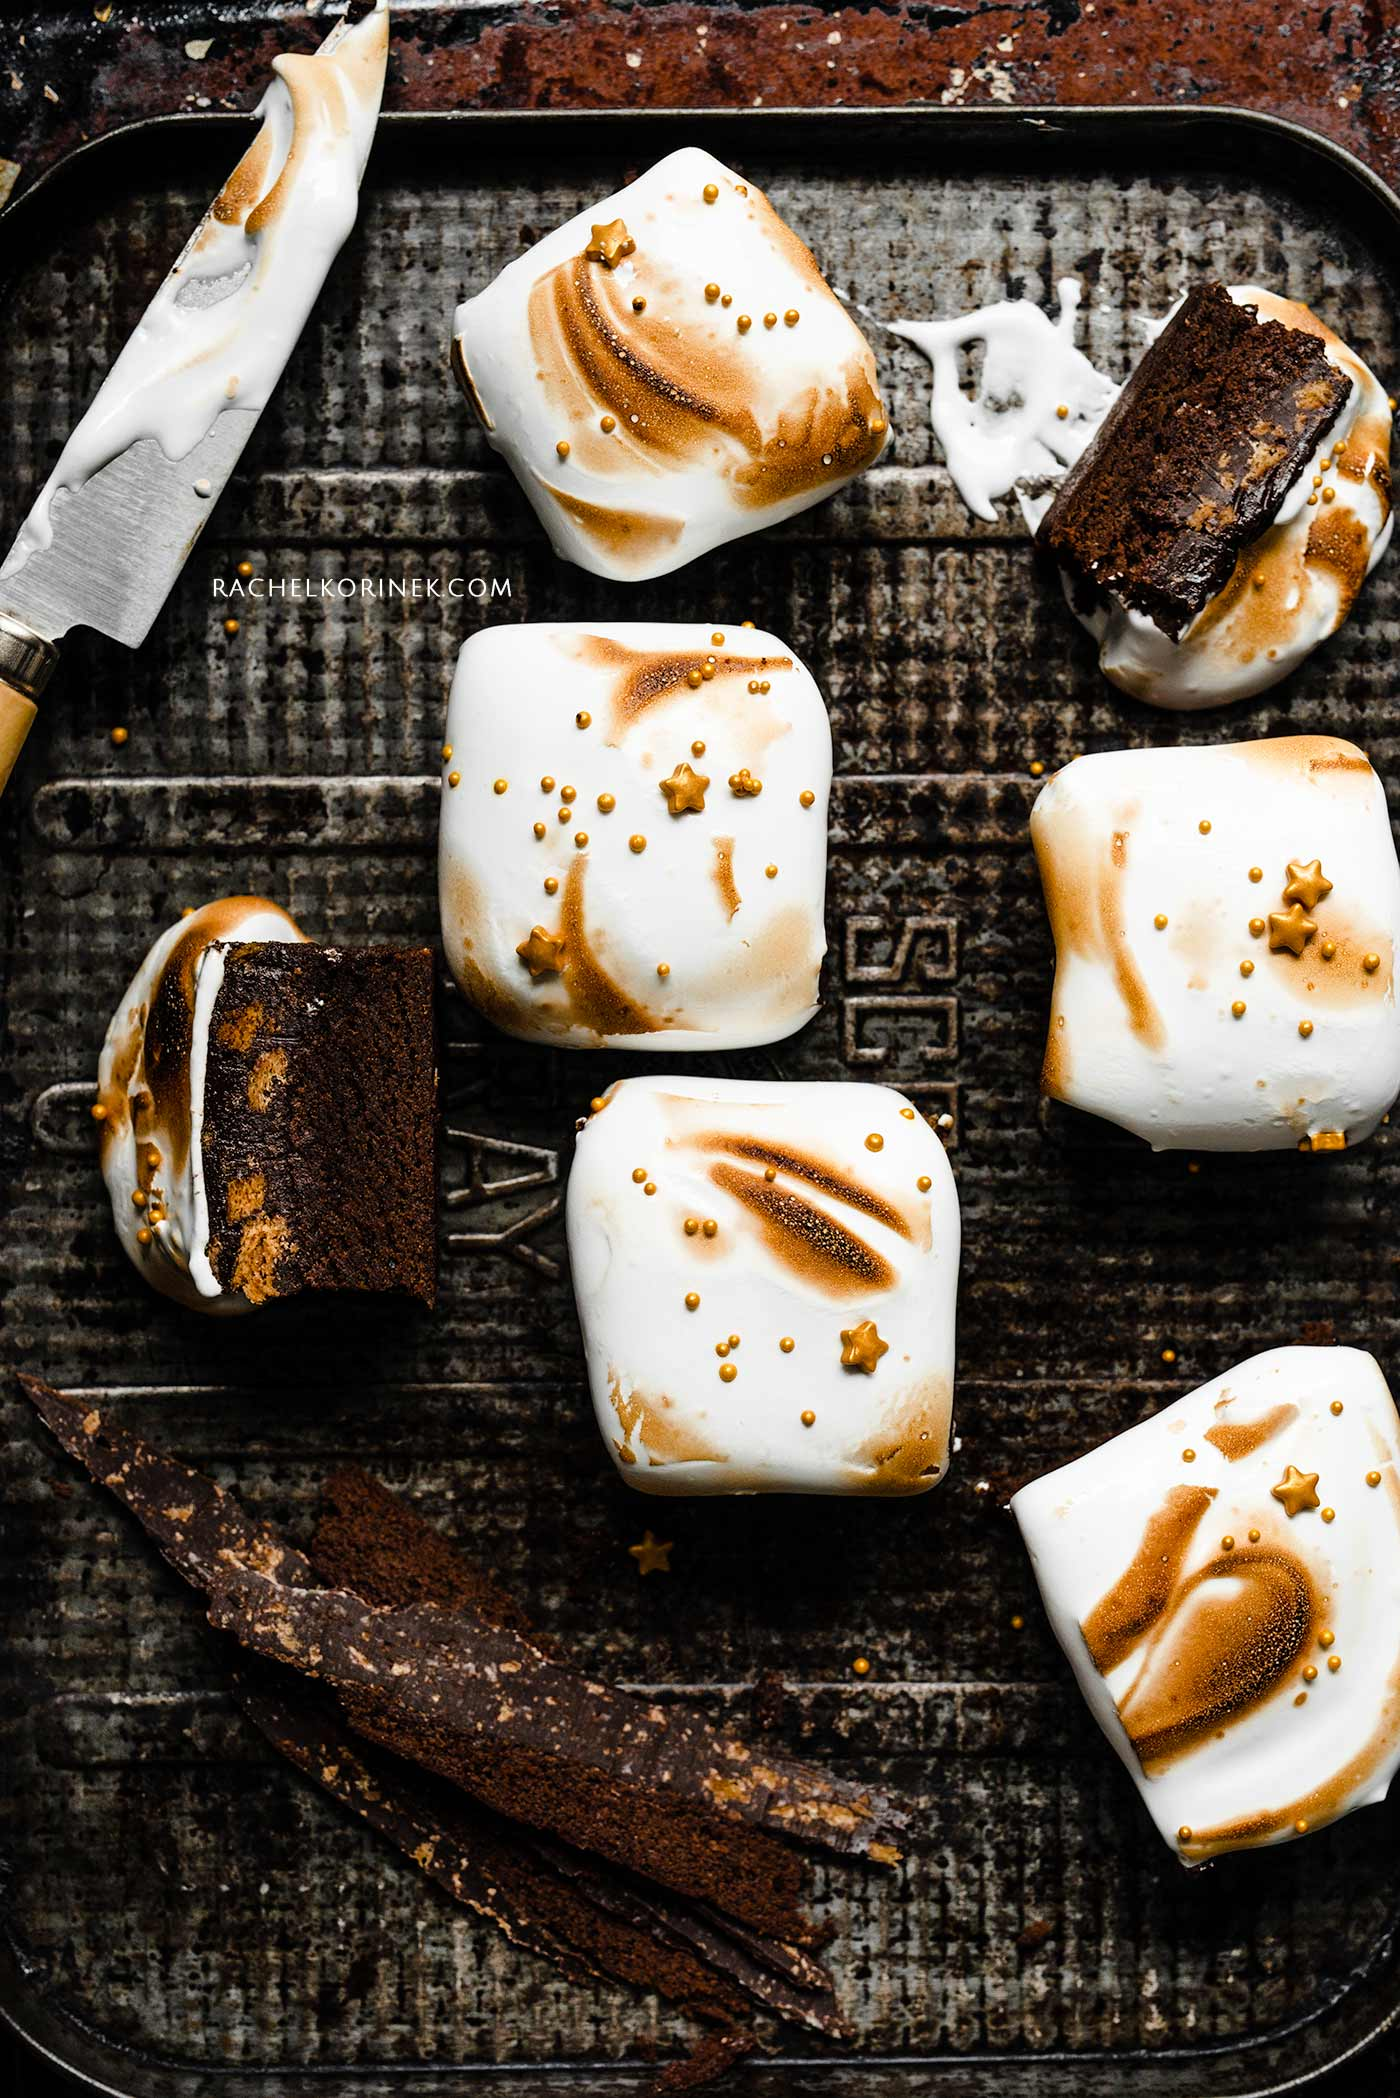 Rachel Korinek | Food Photographer Christmas S'mores Brownies  Click to check out my latest food photography projects.  #twolovesstudio #beautifulcuisine #foodbloggerpro #foodphotography #learnfoodphotography #foodblogger #learnphotography #foodstyling #lightingtips #naturallight #foodphotographer